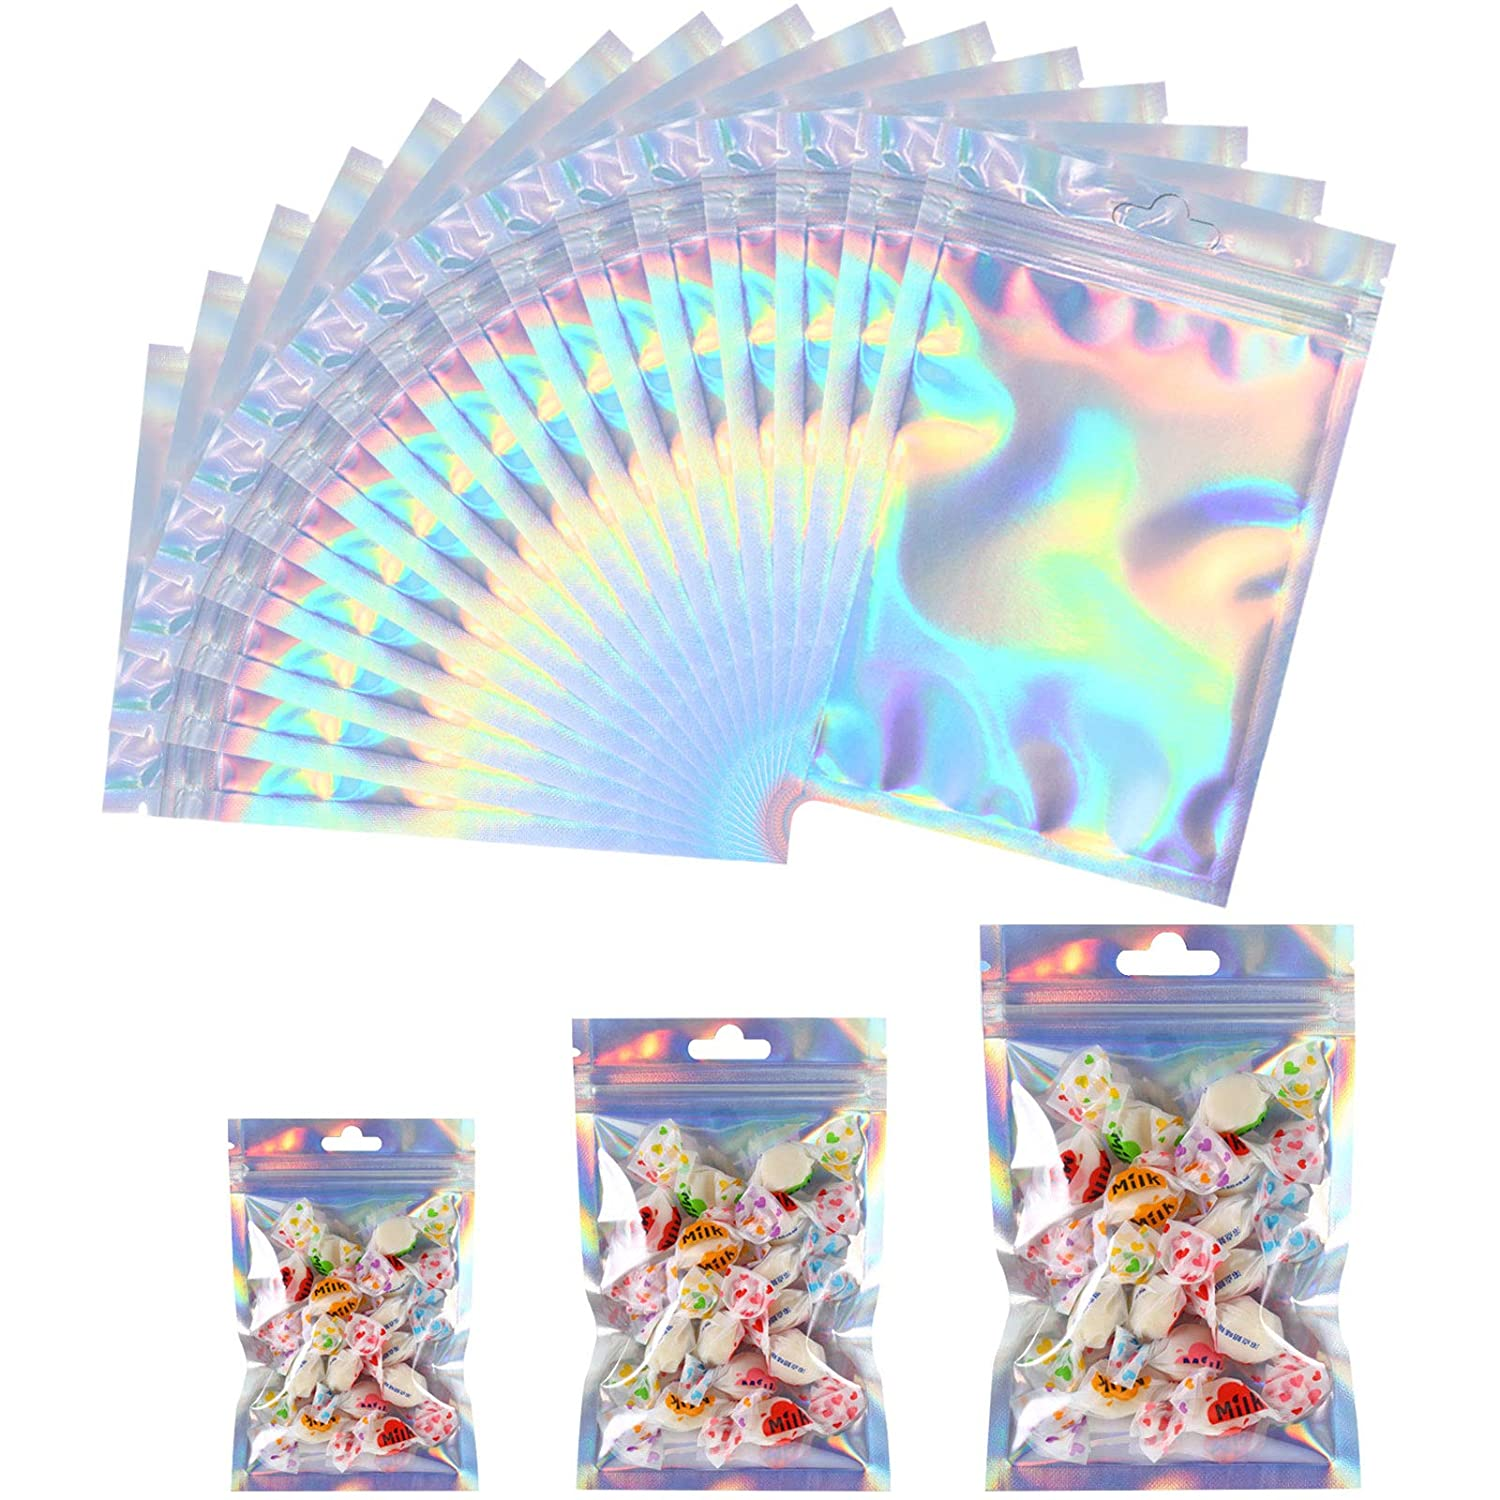 150 Pieces Mylar Zip Storage Bags with Hanging Hole Aluminum Foil Food Storage Bags Resealable Smell Proof Pouch Mylar Bags for Candy, Jewelry, Screw, 3 Sizes (Holographic Rainbow)